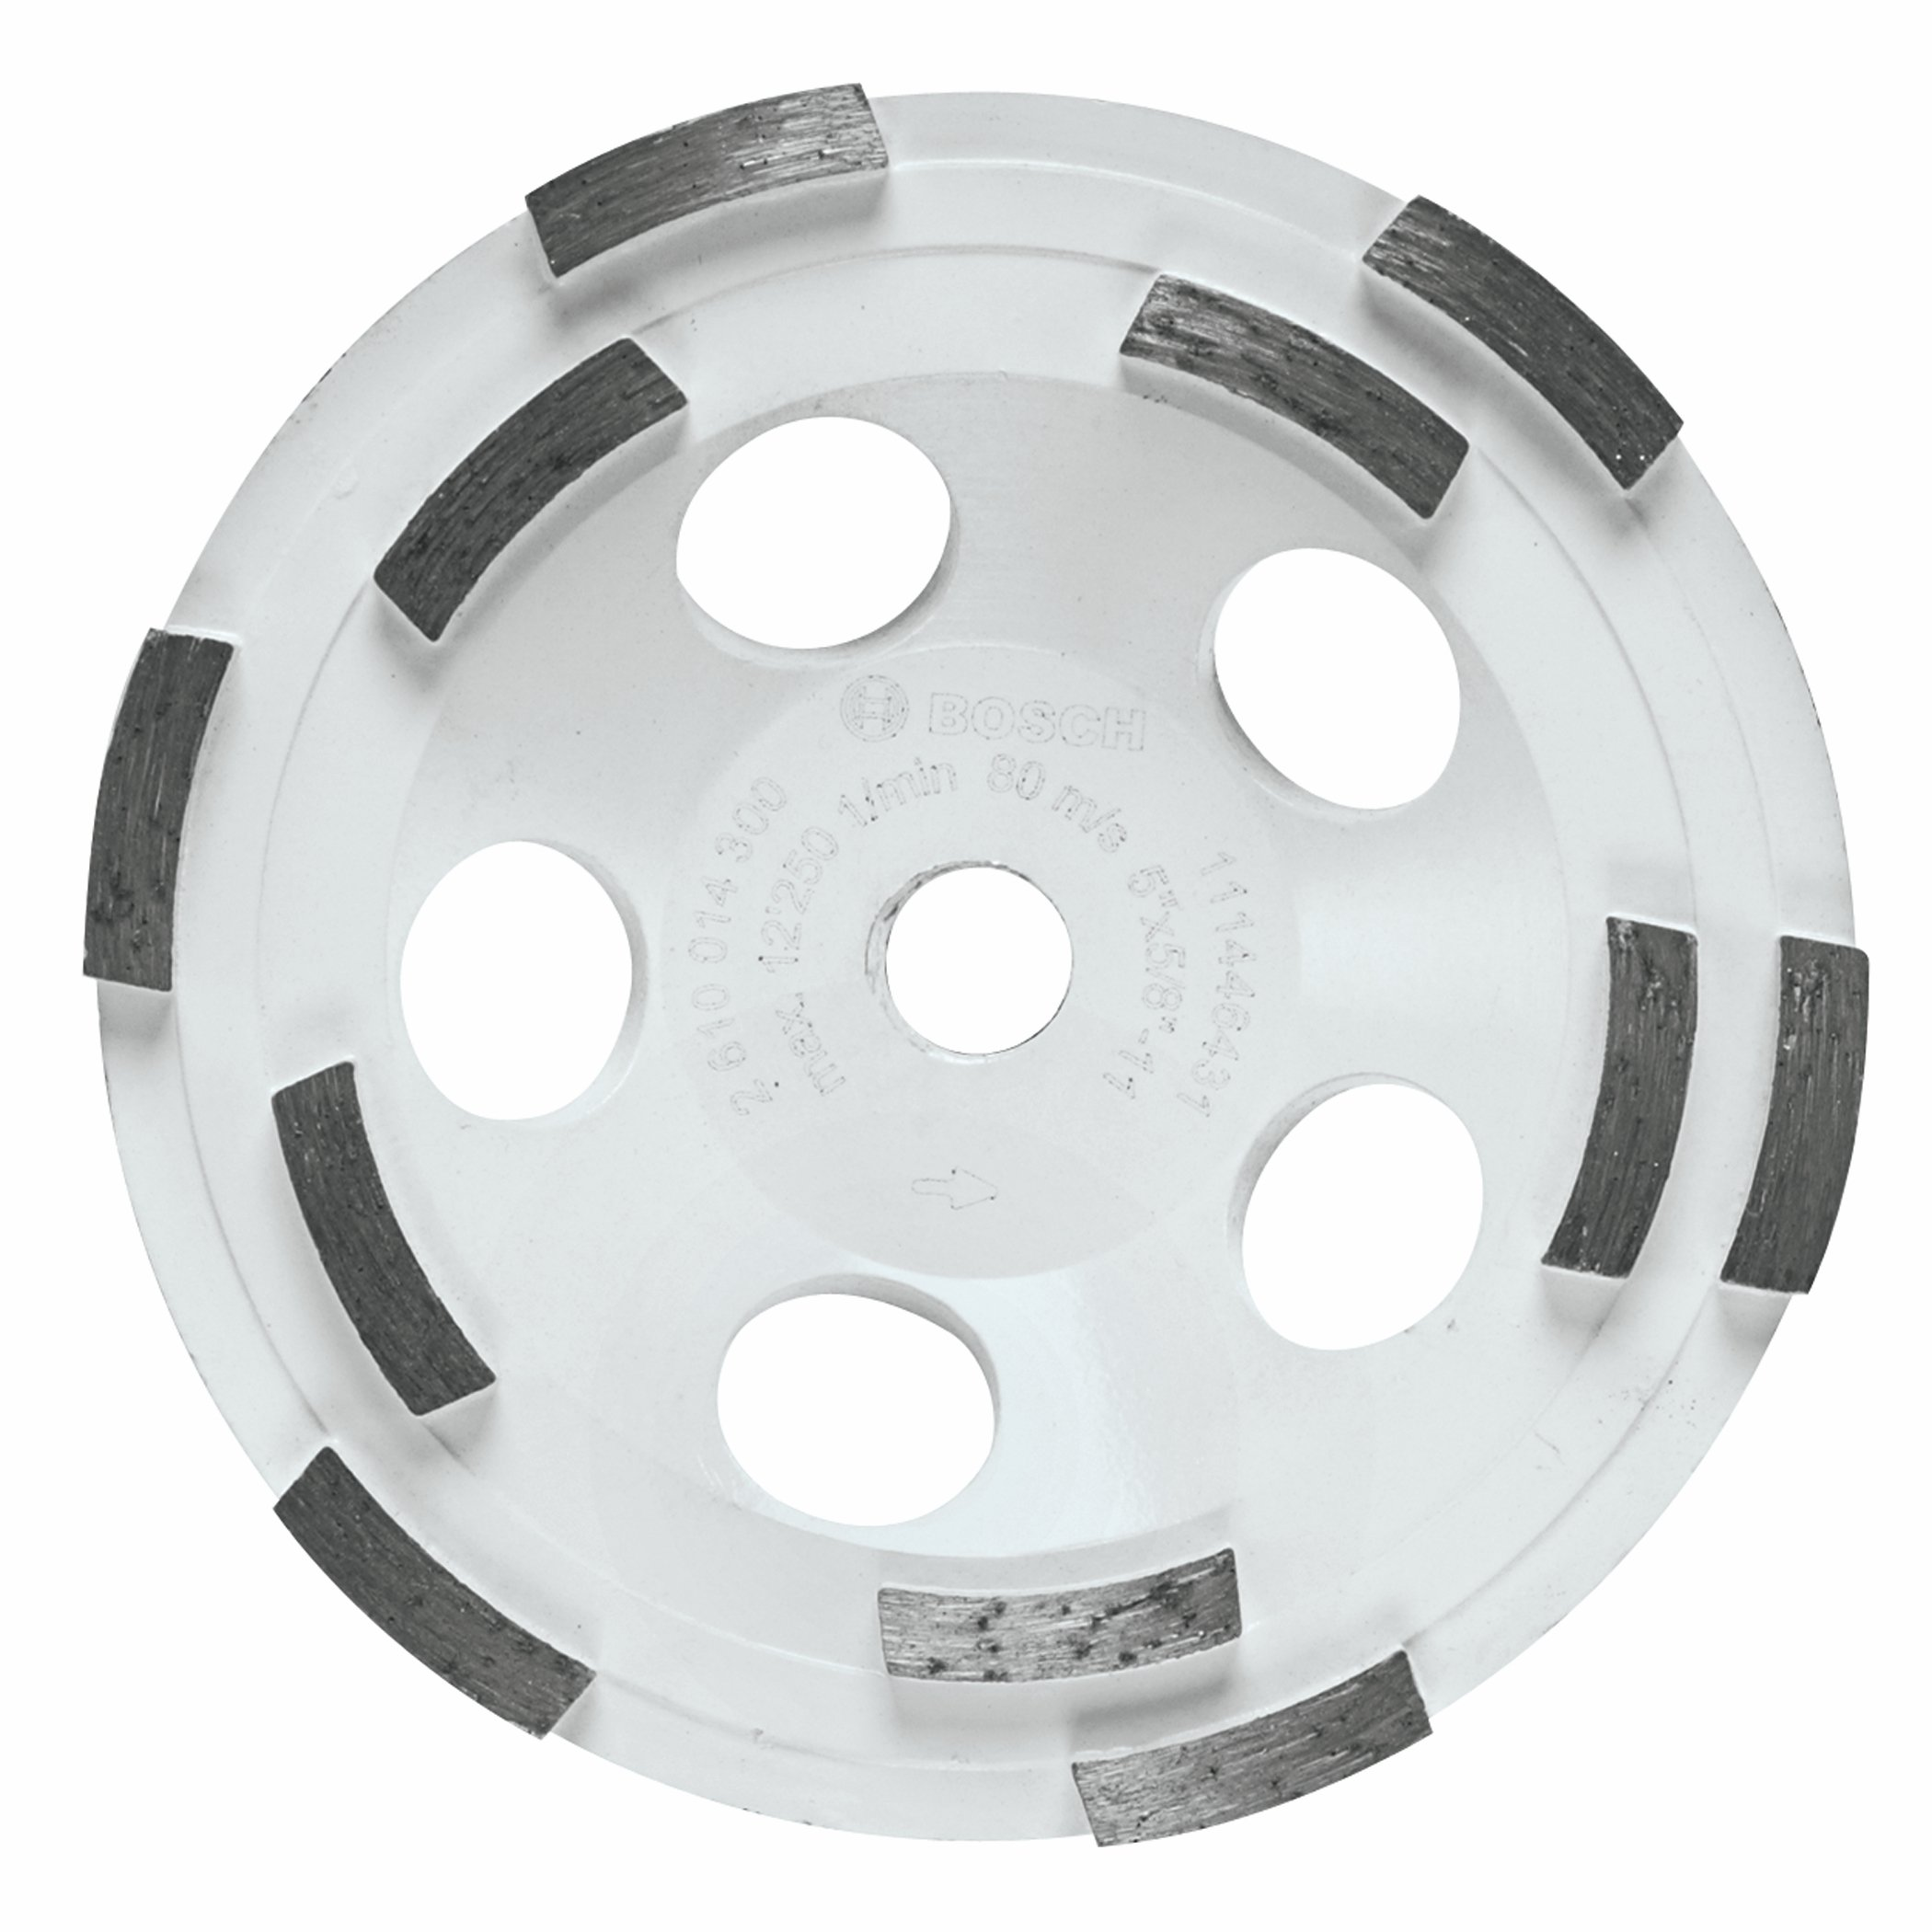 Bosch DC510H 5-Inch Diameter Double Row Diamond Cup Wheel with 5/8-11 Hub by Bosch